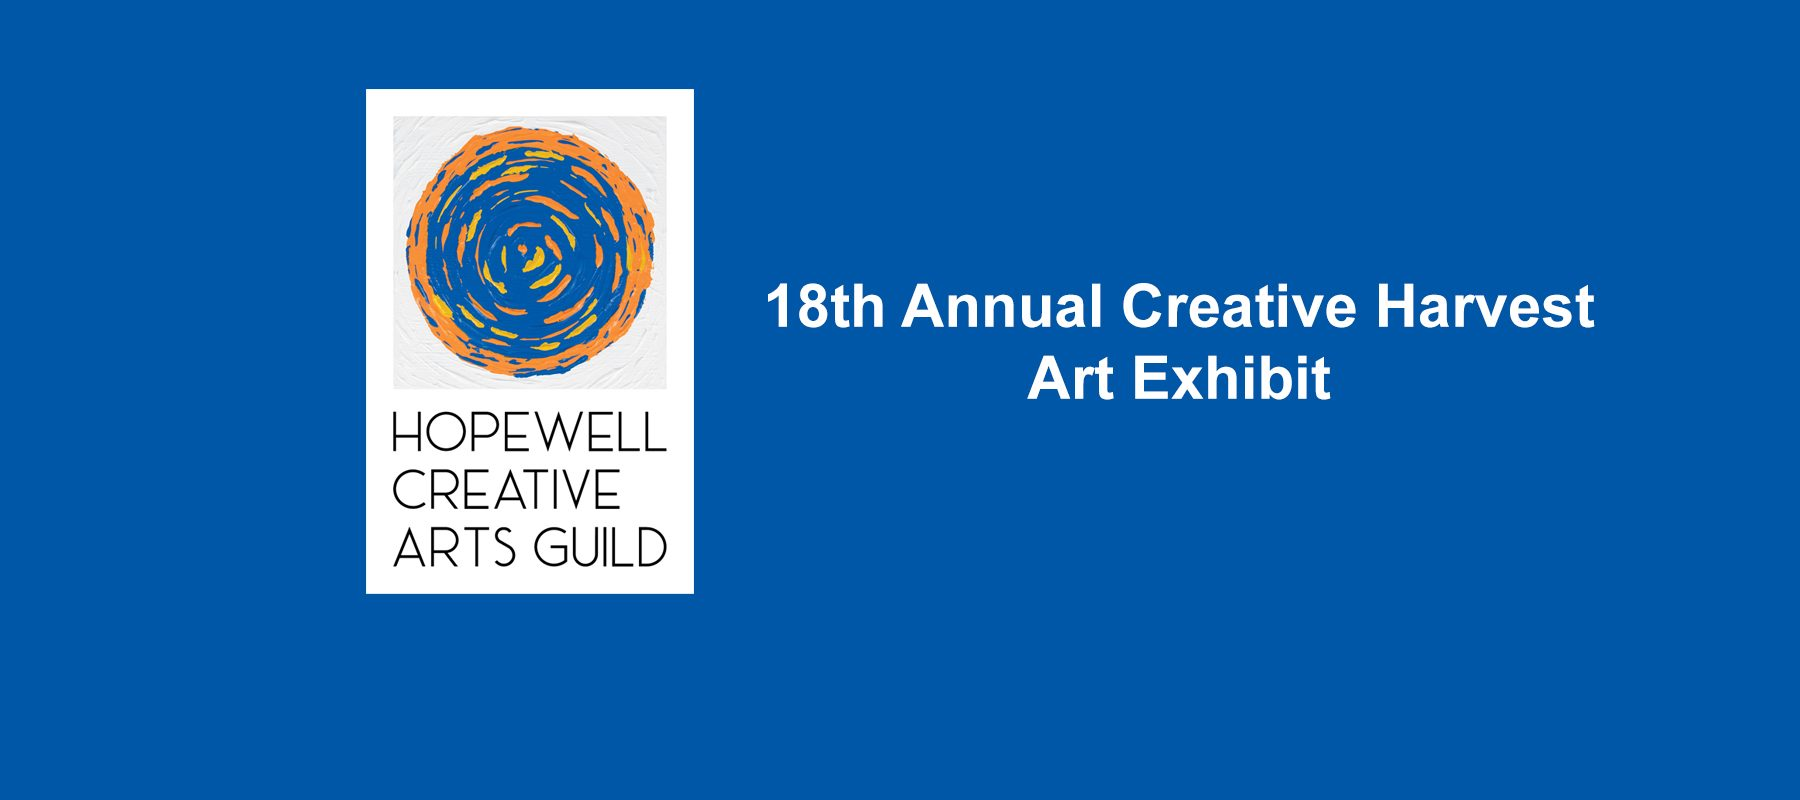 18th Annual Creative Harvest Art Exhibit